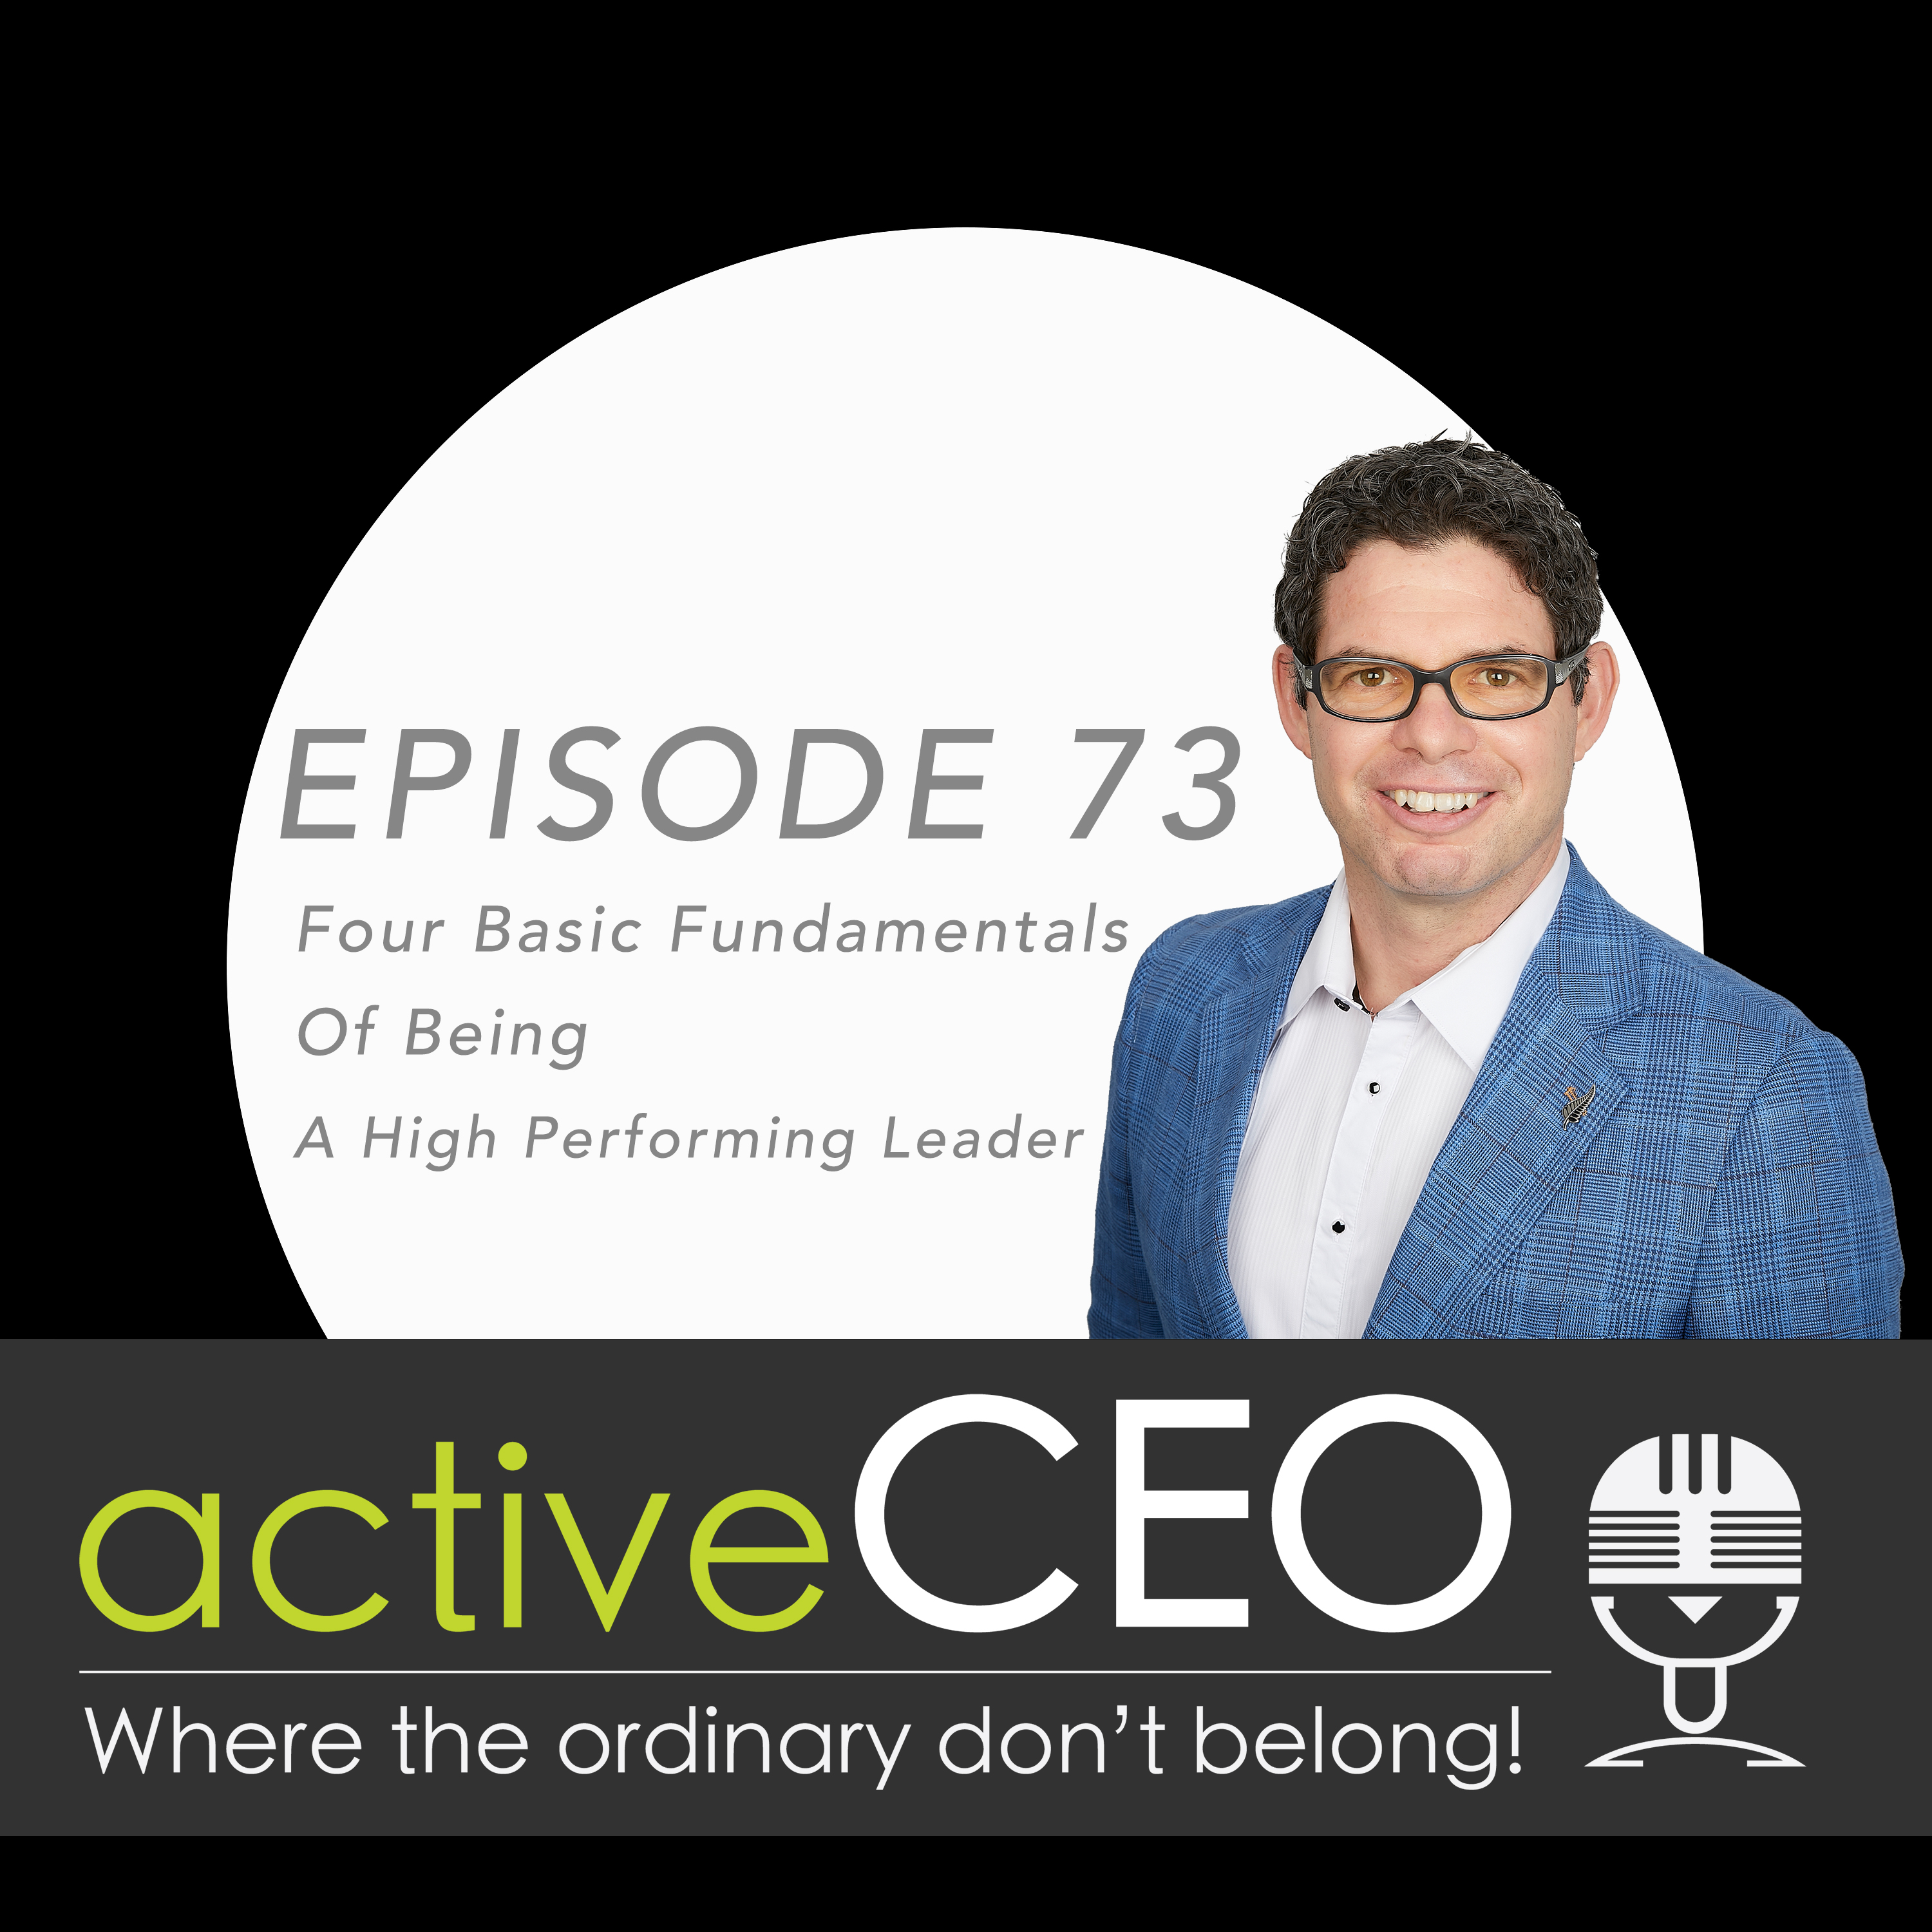 Craig Johns – CEO NRG2Perform, active CEO Podcast Host